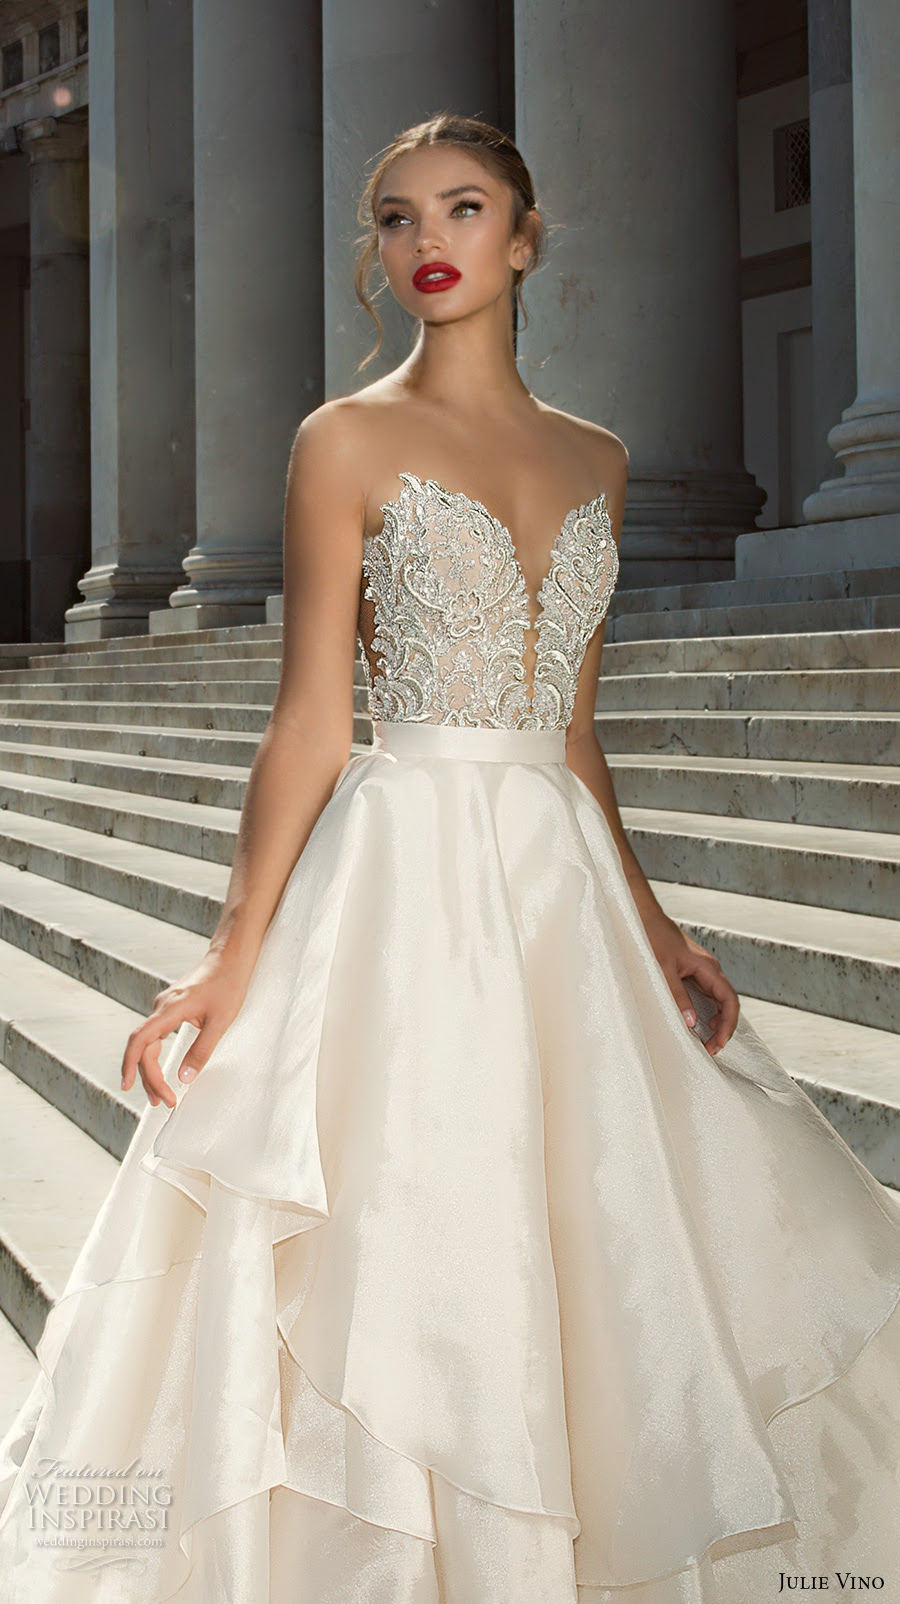 julie vino fall 2017 wedding dresses from the napoli